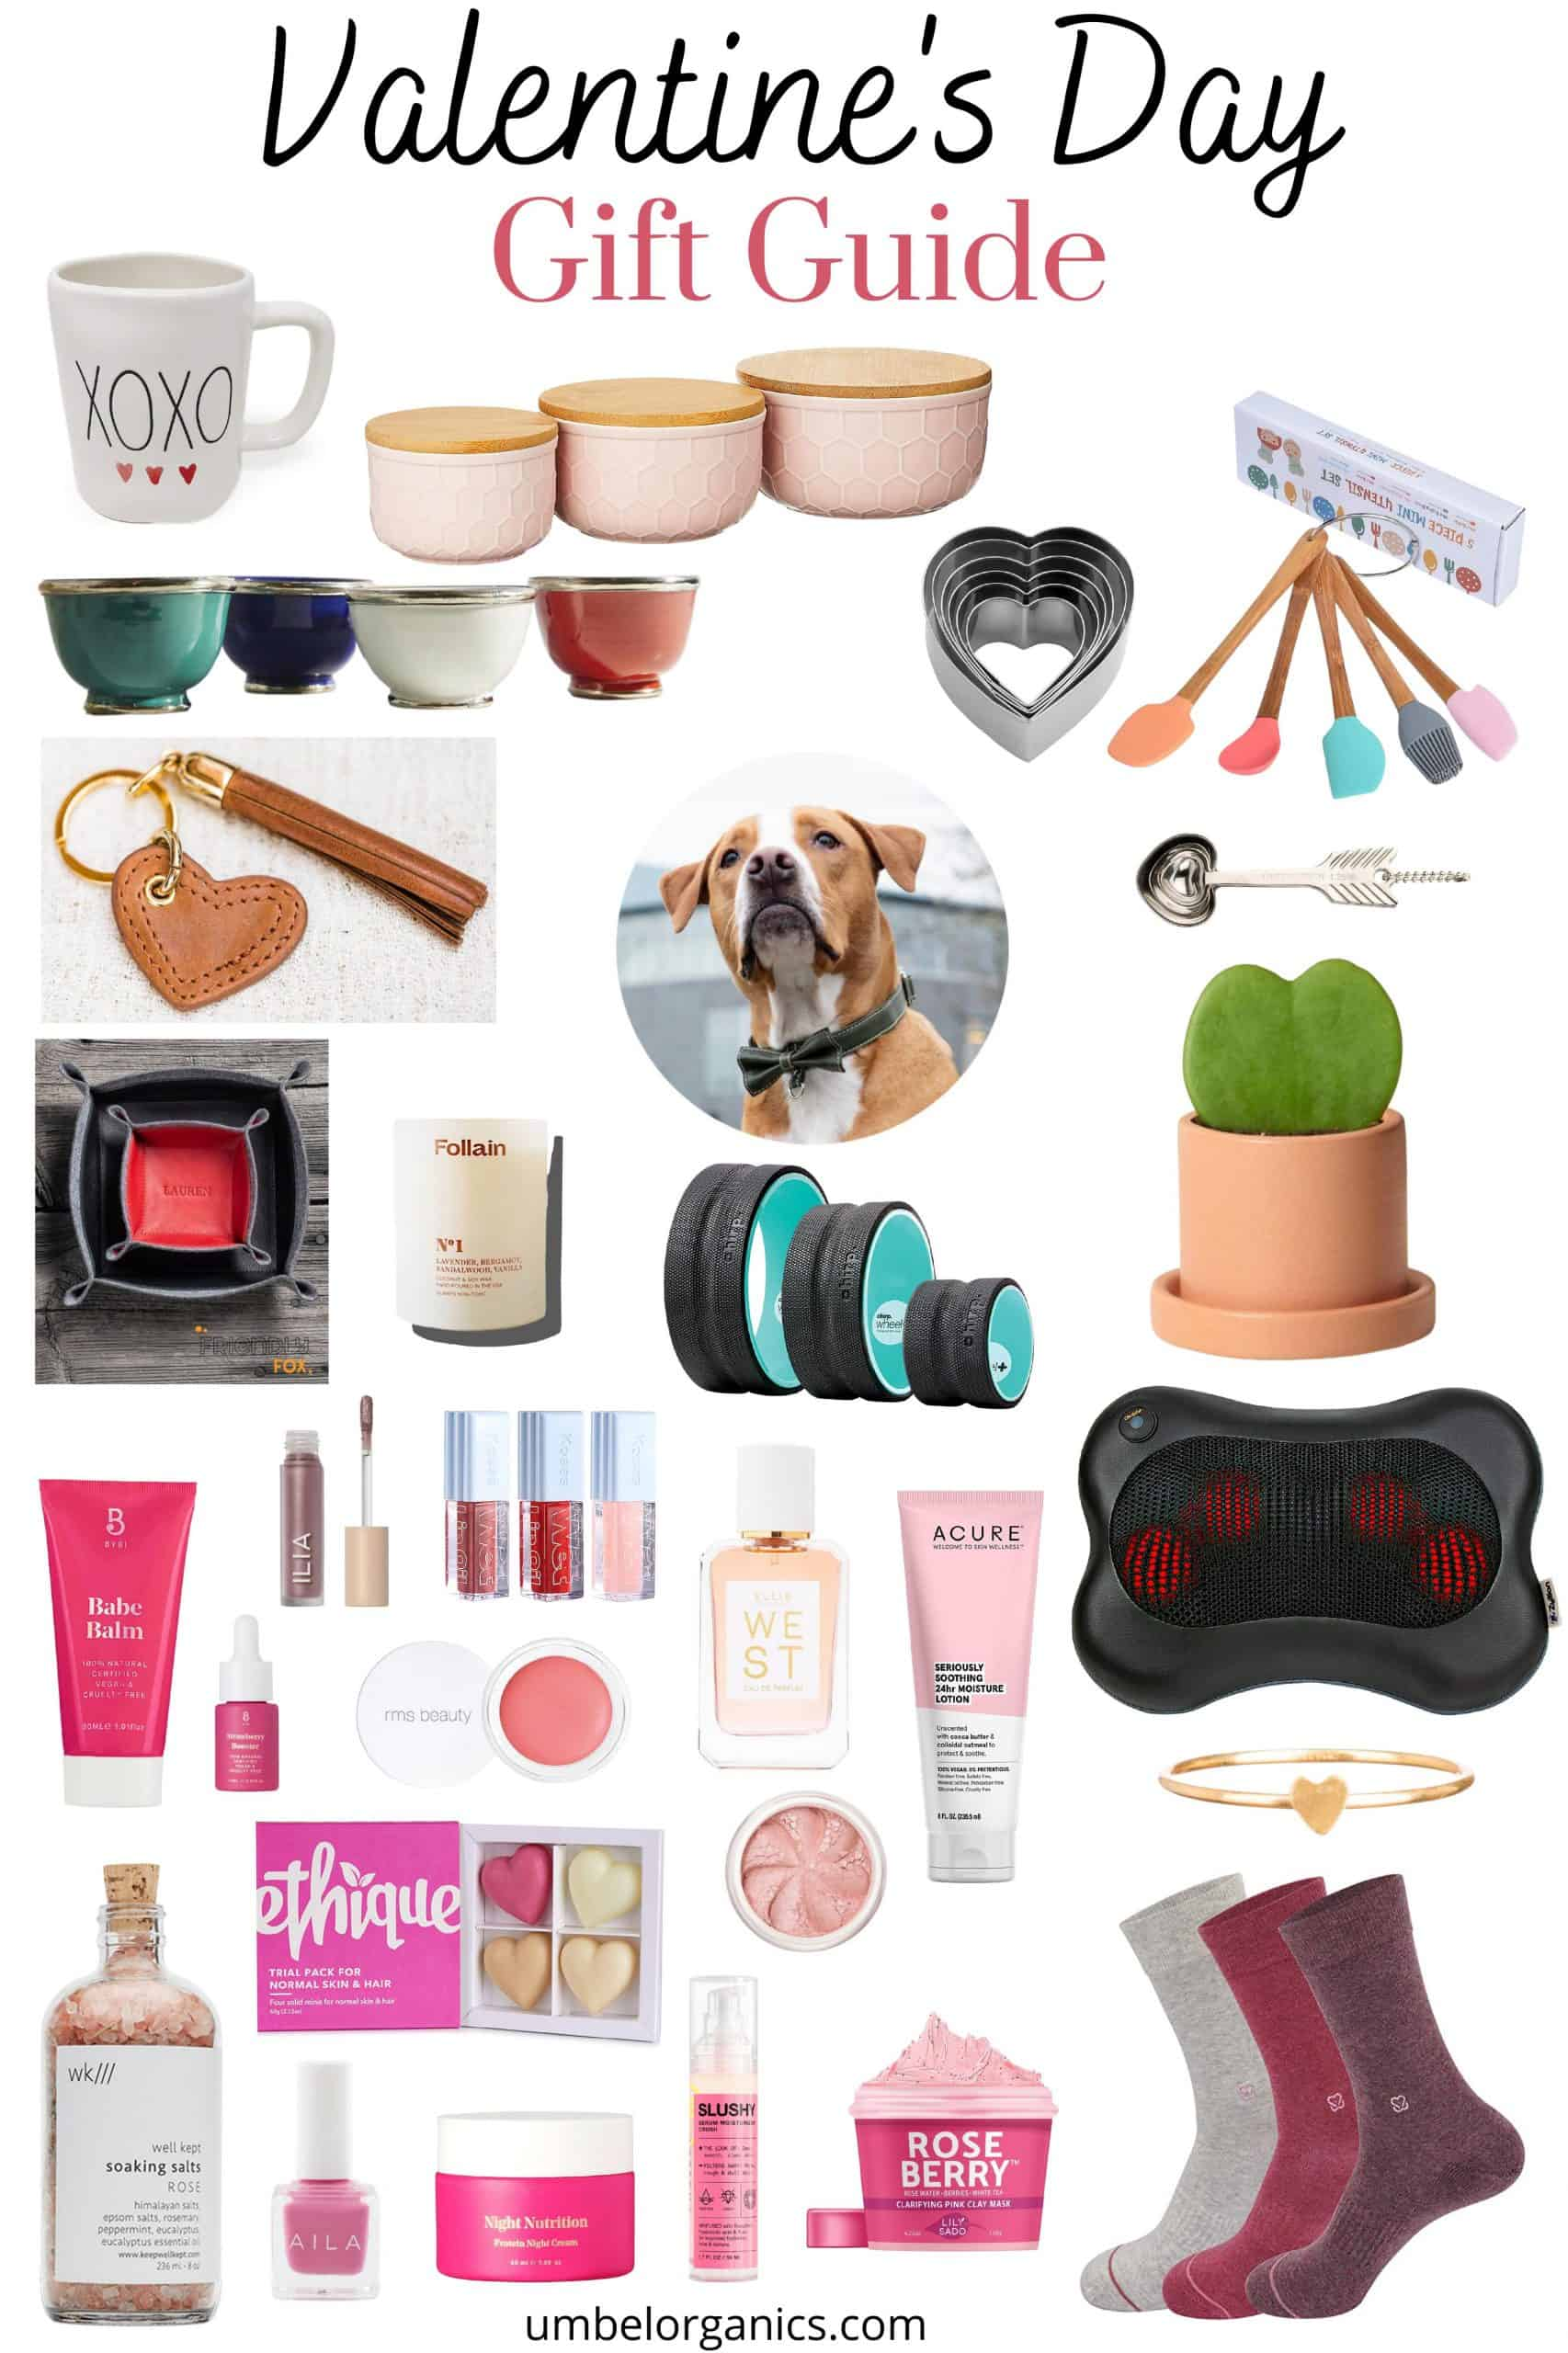 Valentine's Day gifts for adults with kitchen accessories, clean beauty products and non-toxic candles